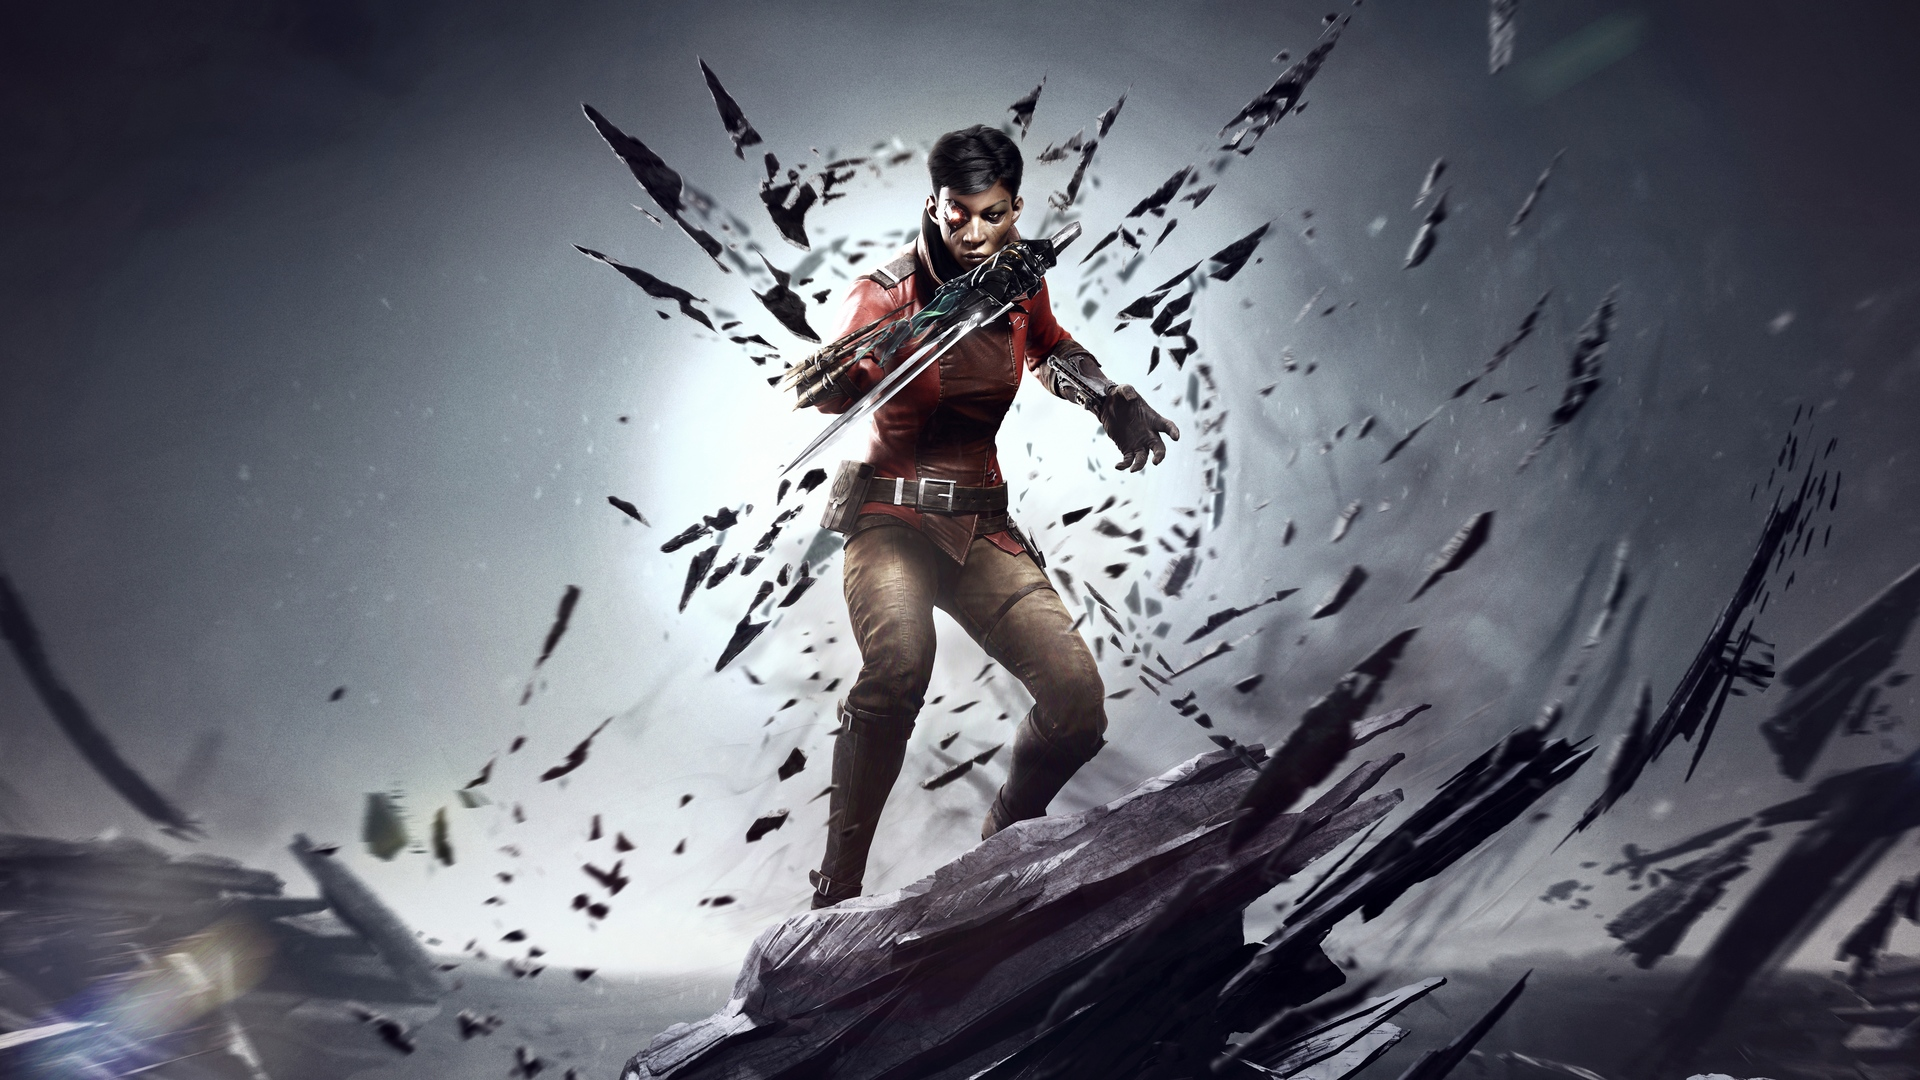 Dishonored Death of the Outsider HD Wallpapers 26 images 1920x1080